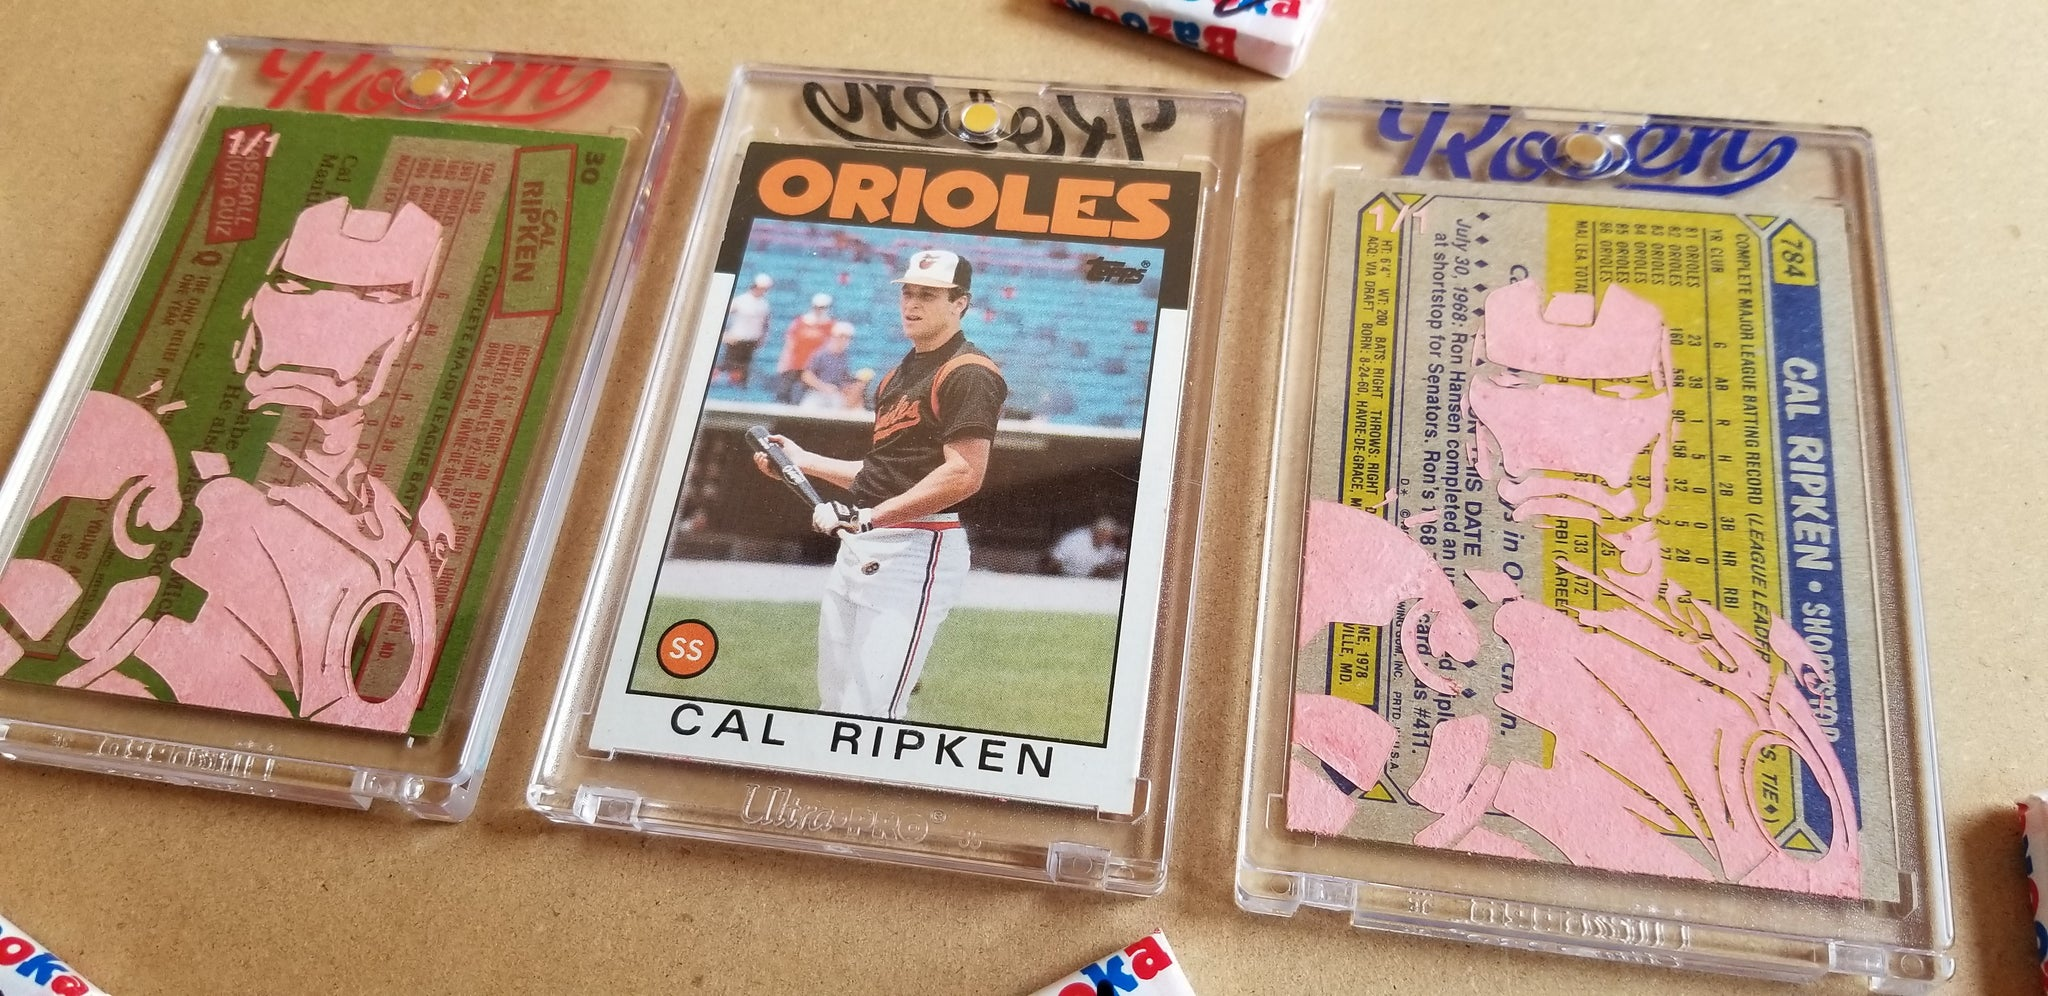 Baseball card art by Matthew Lee Rosen (aka Matthew Rosen) - Cal Ripken Jr. (Iron Man)